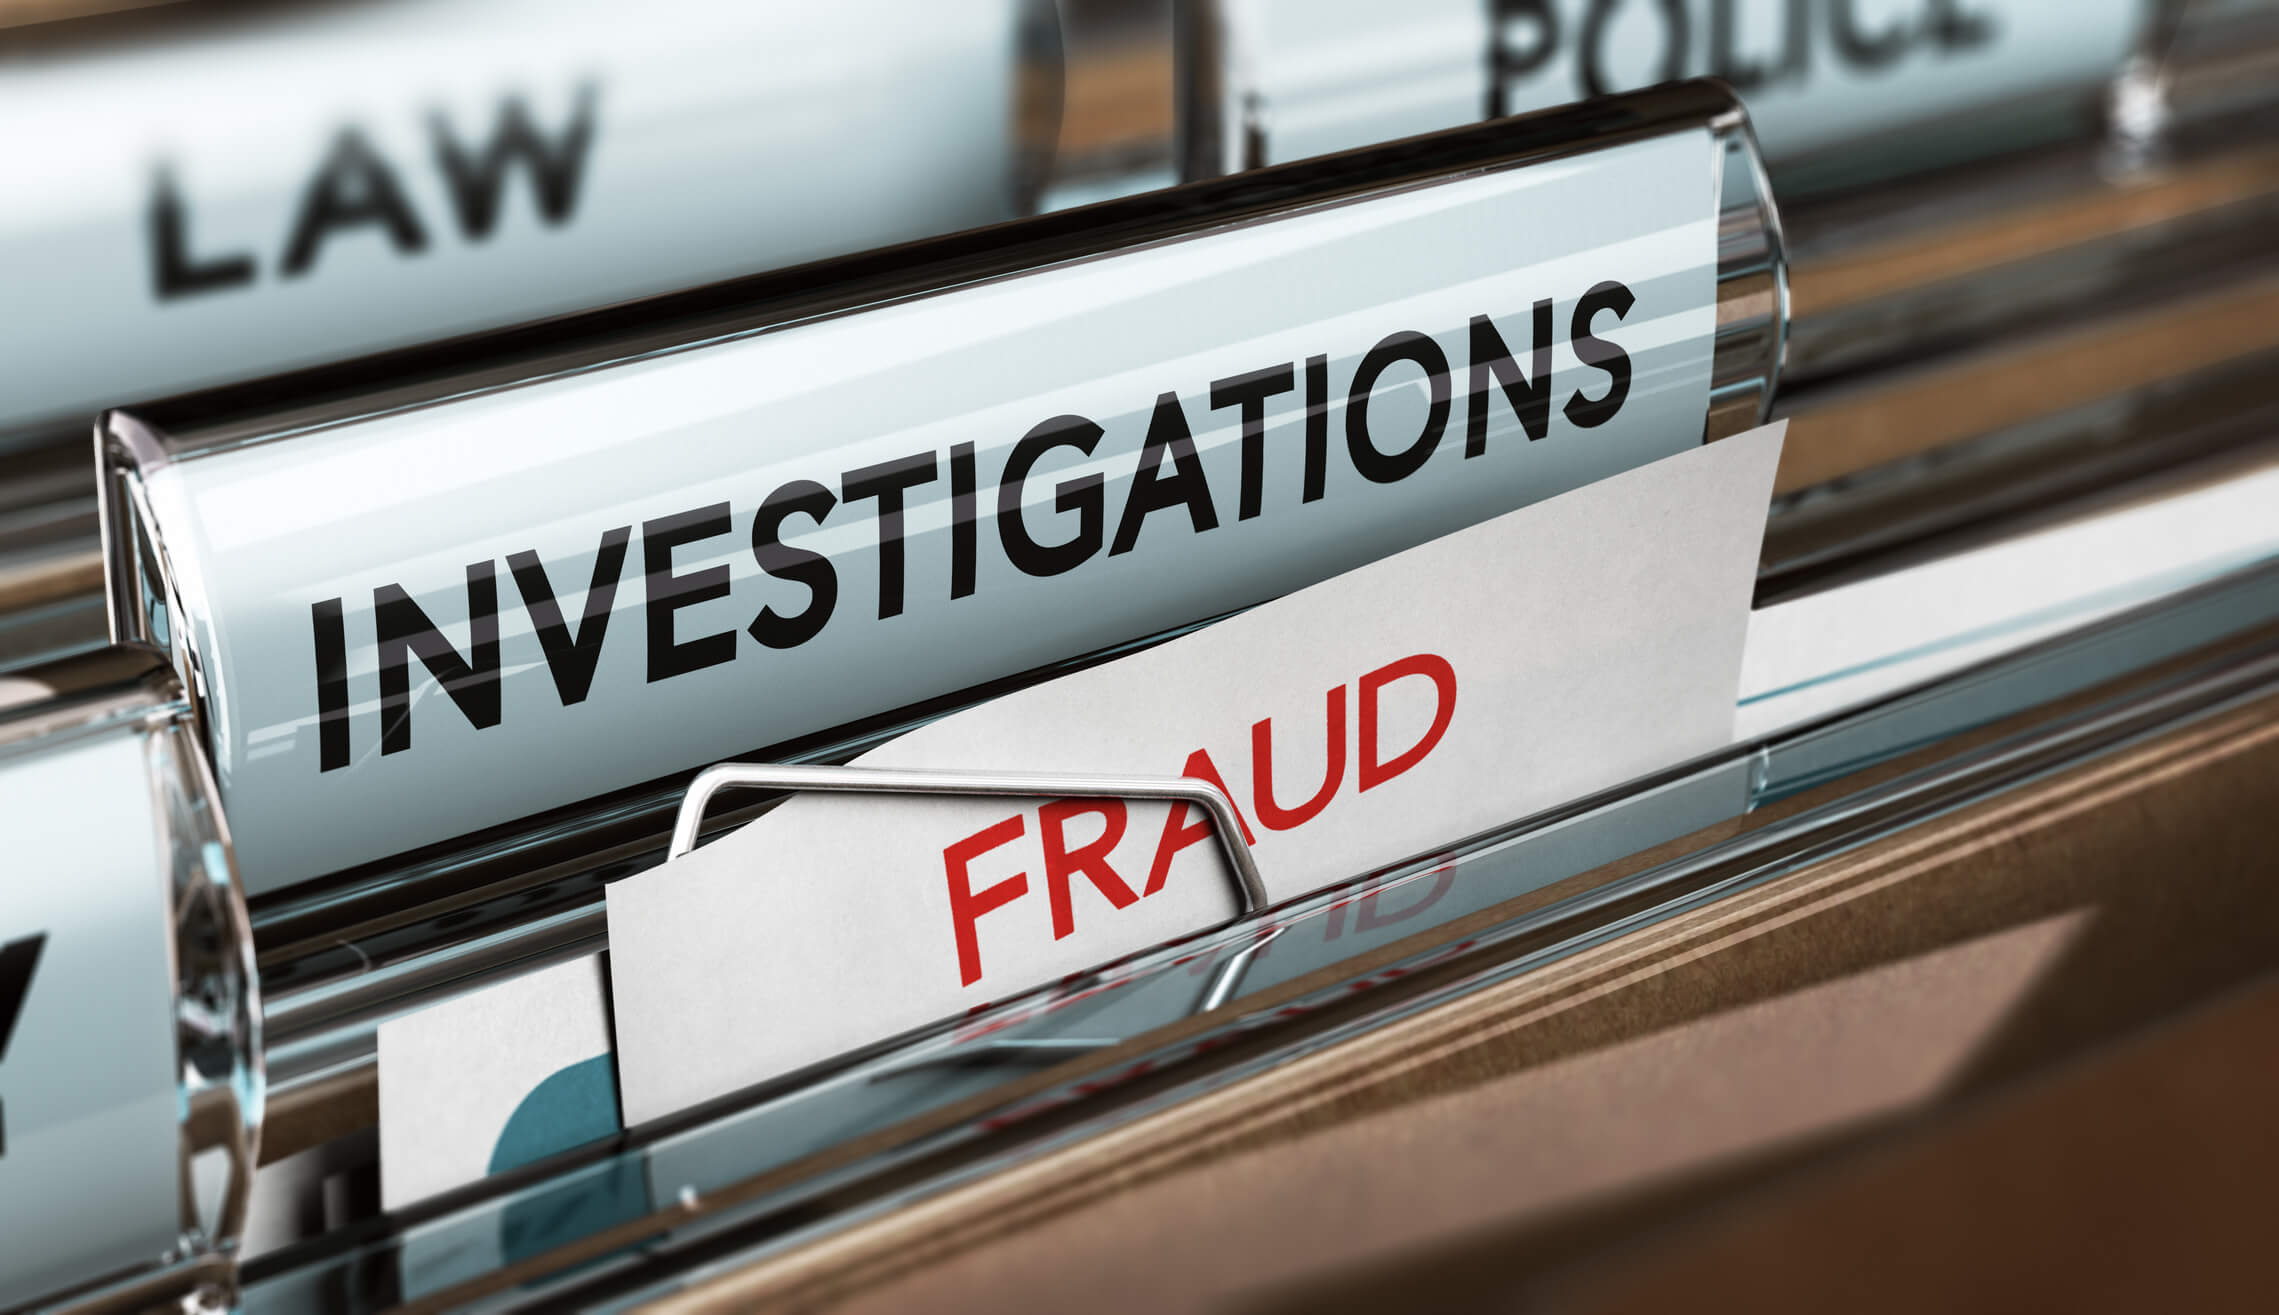 What if Performance Marketing is Only a Scam When Enacted Fraudulently?